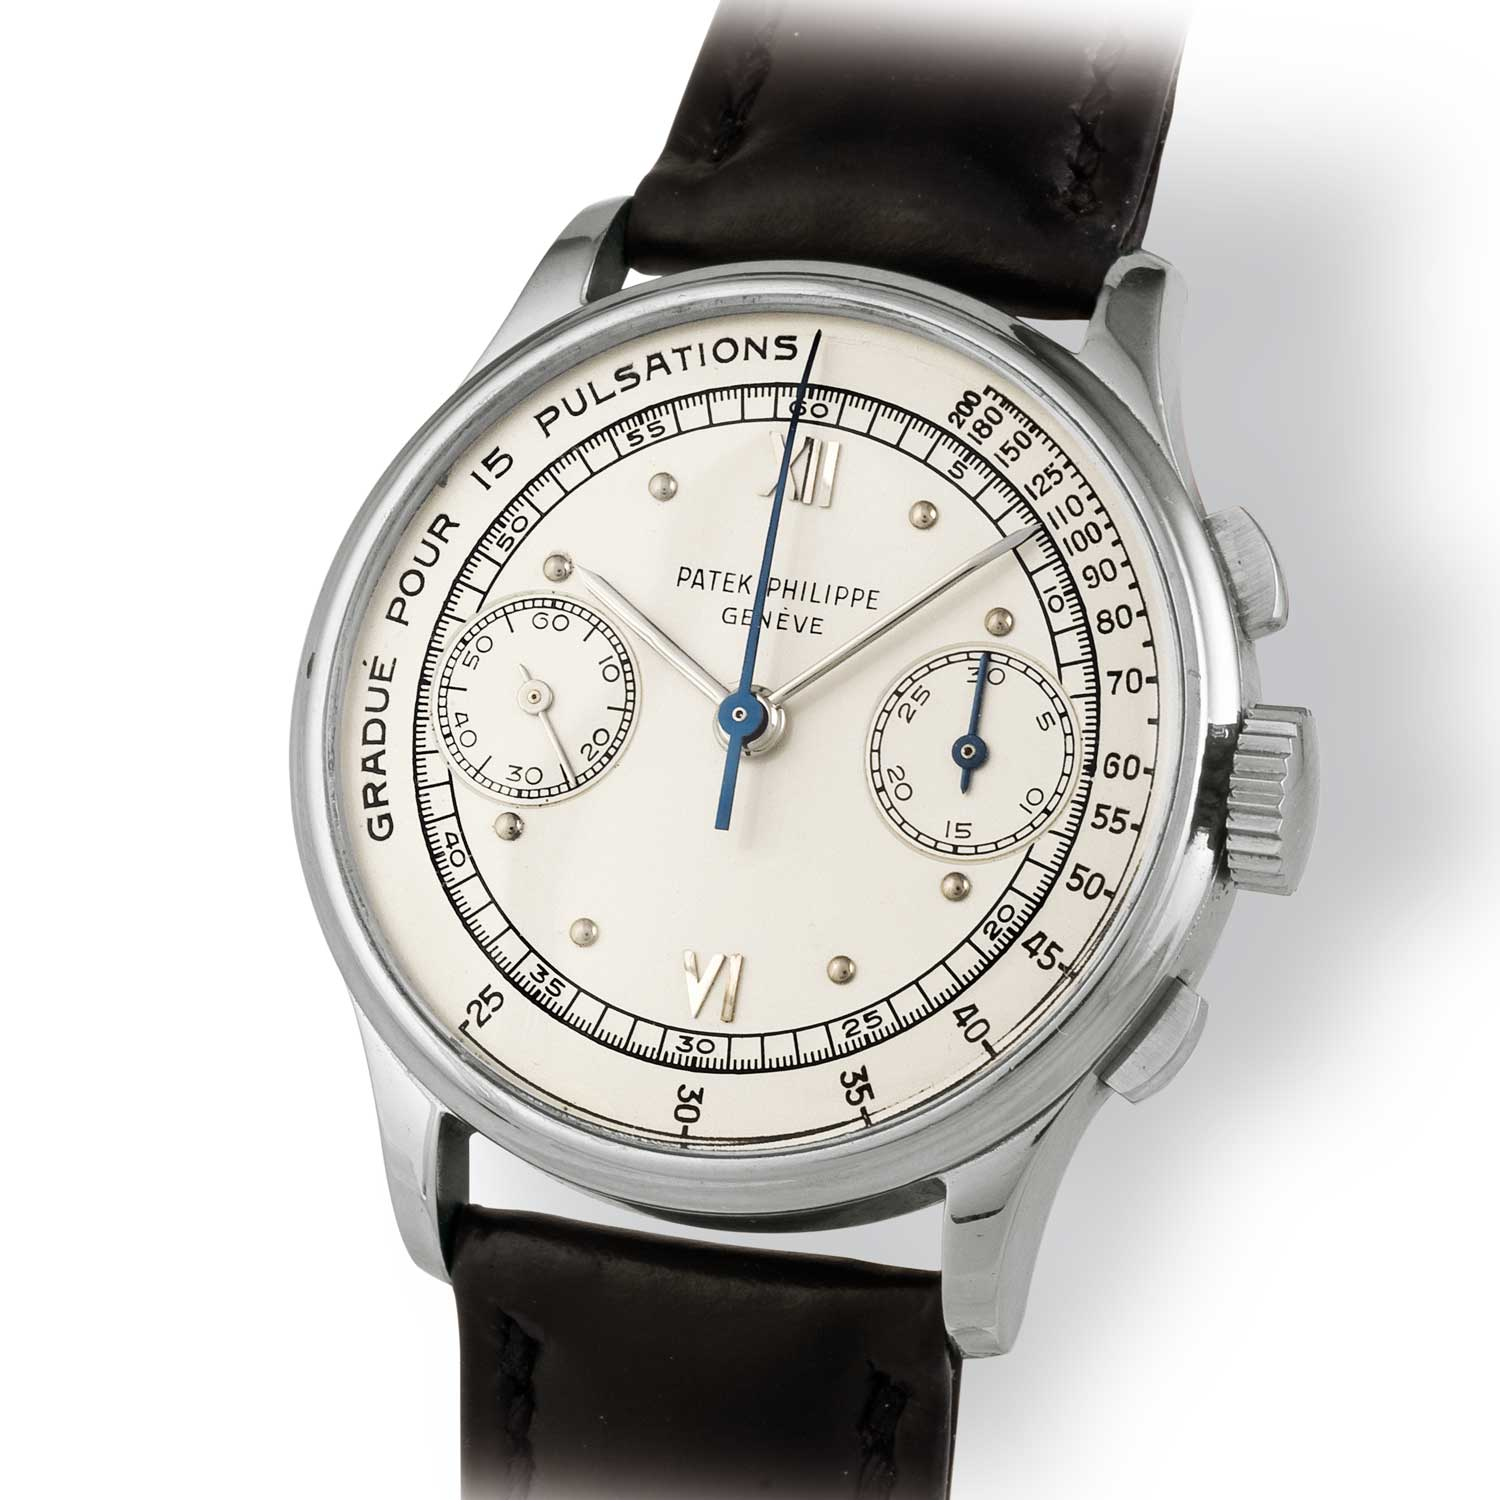 Patek Philippe ref. 130 steel chronograph with pulsation scale (Image: John Goldberger)